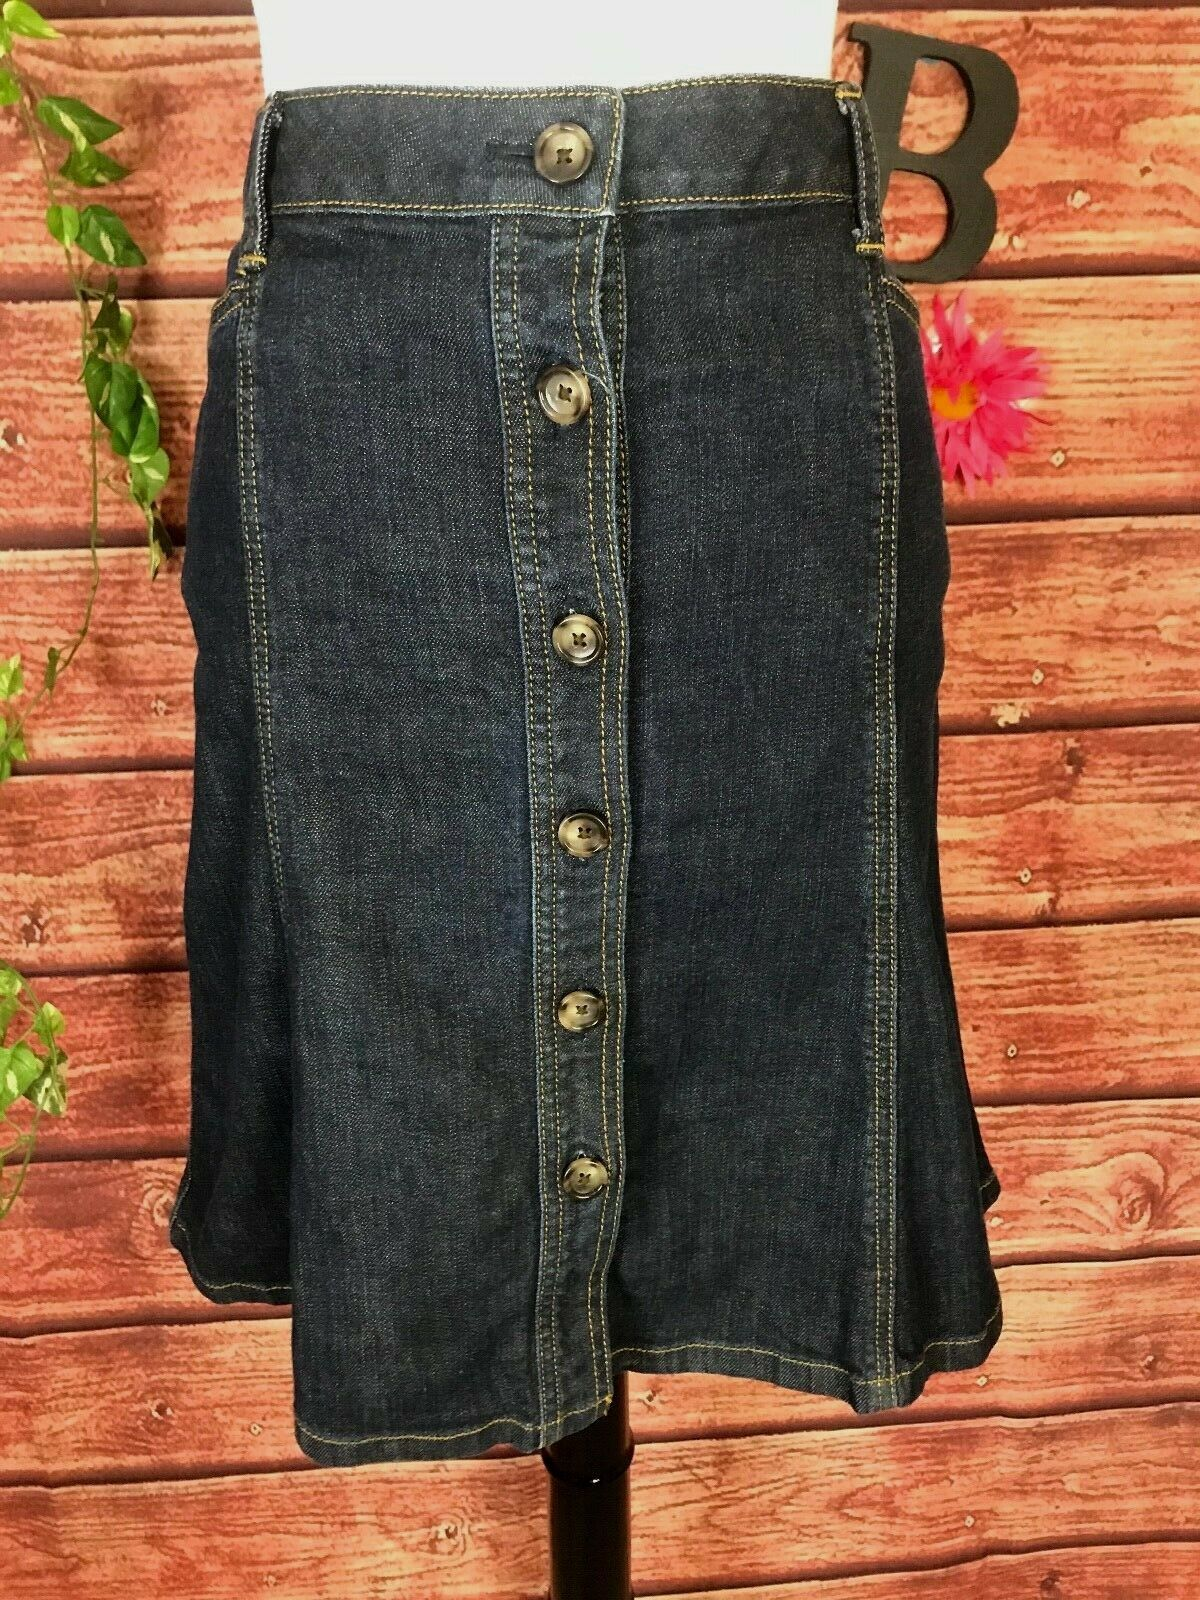 Primary image for Ann Taylor Skirt size 8 Denim Jean Knee A Line Button Front Stretch Classic Slim